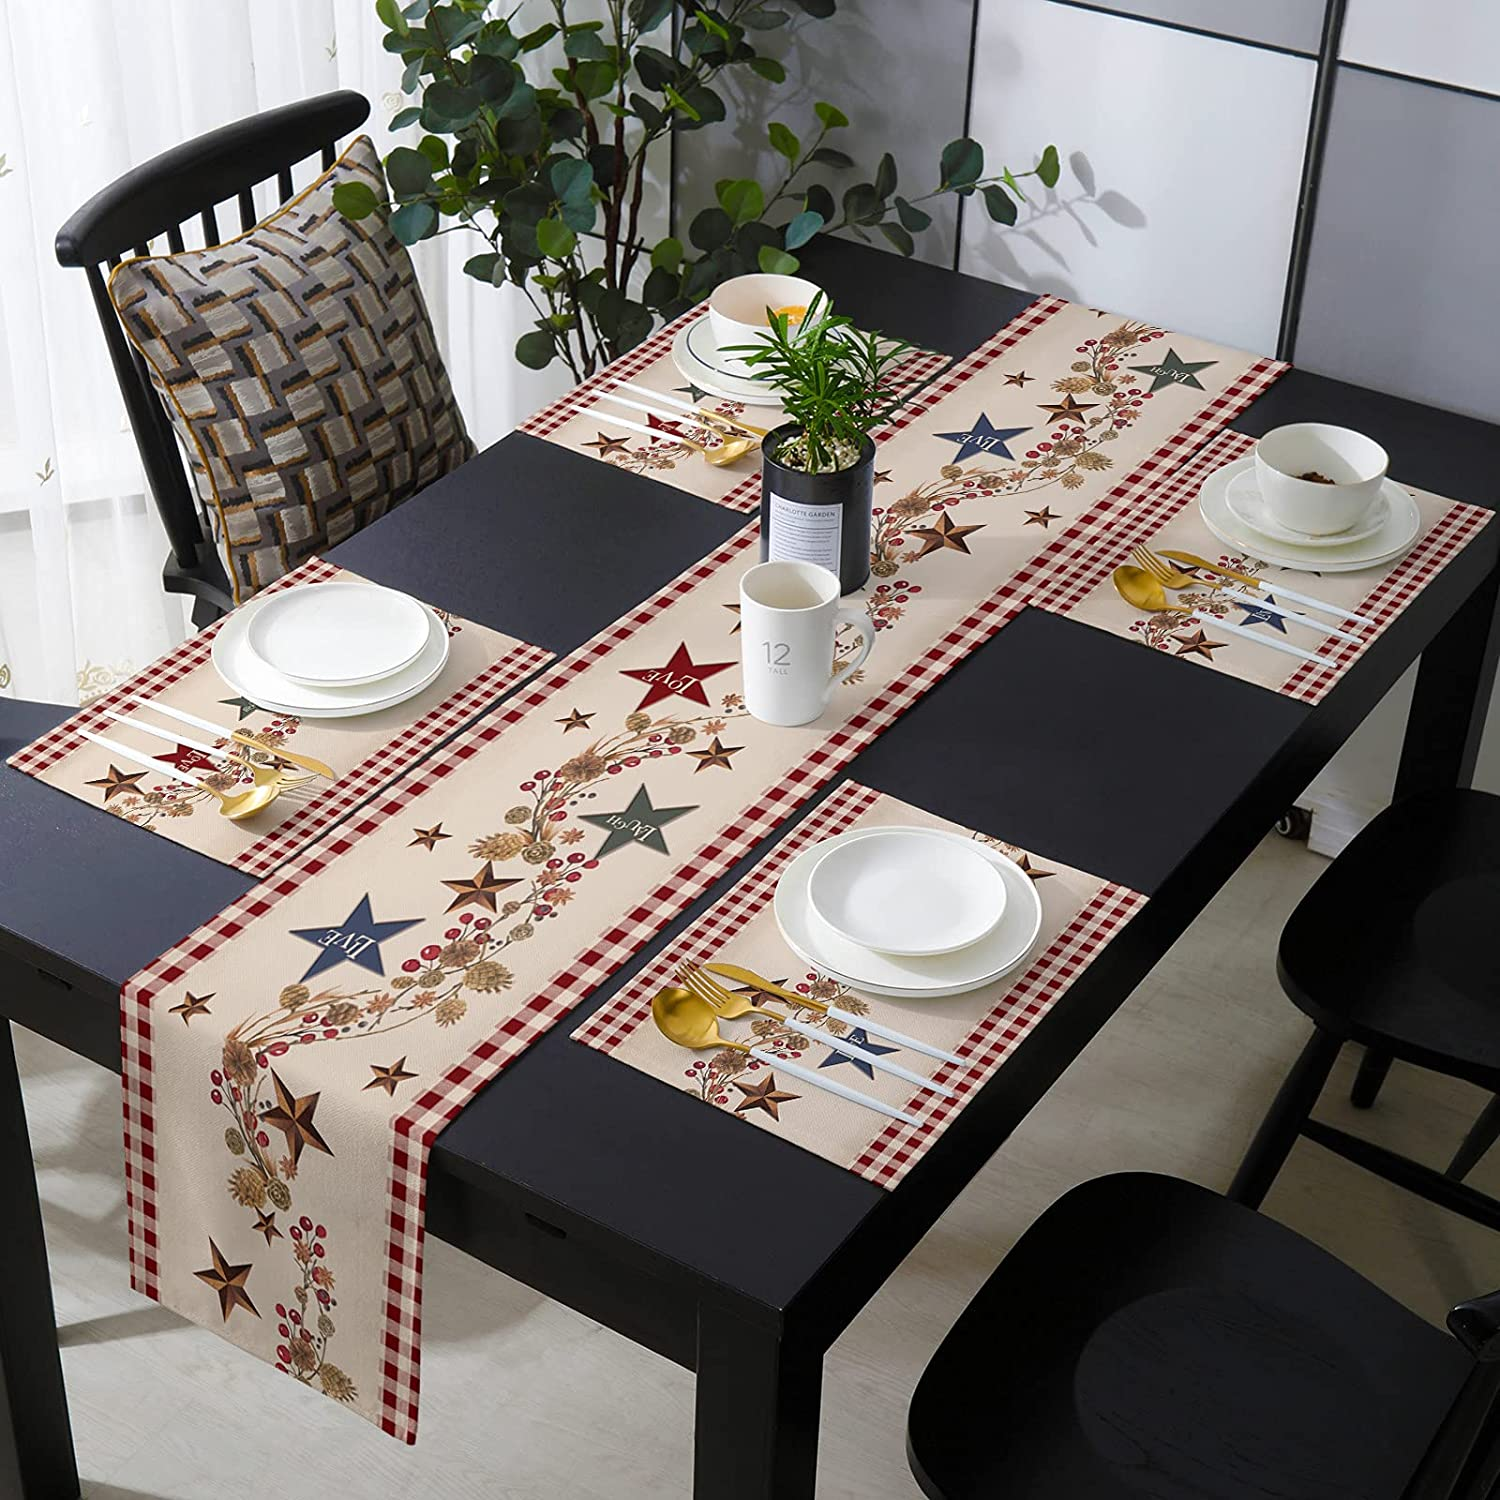 Table Runner Sets with Placemats Matching Mats 6 Max 86% OFF Sa Quality inspection -